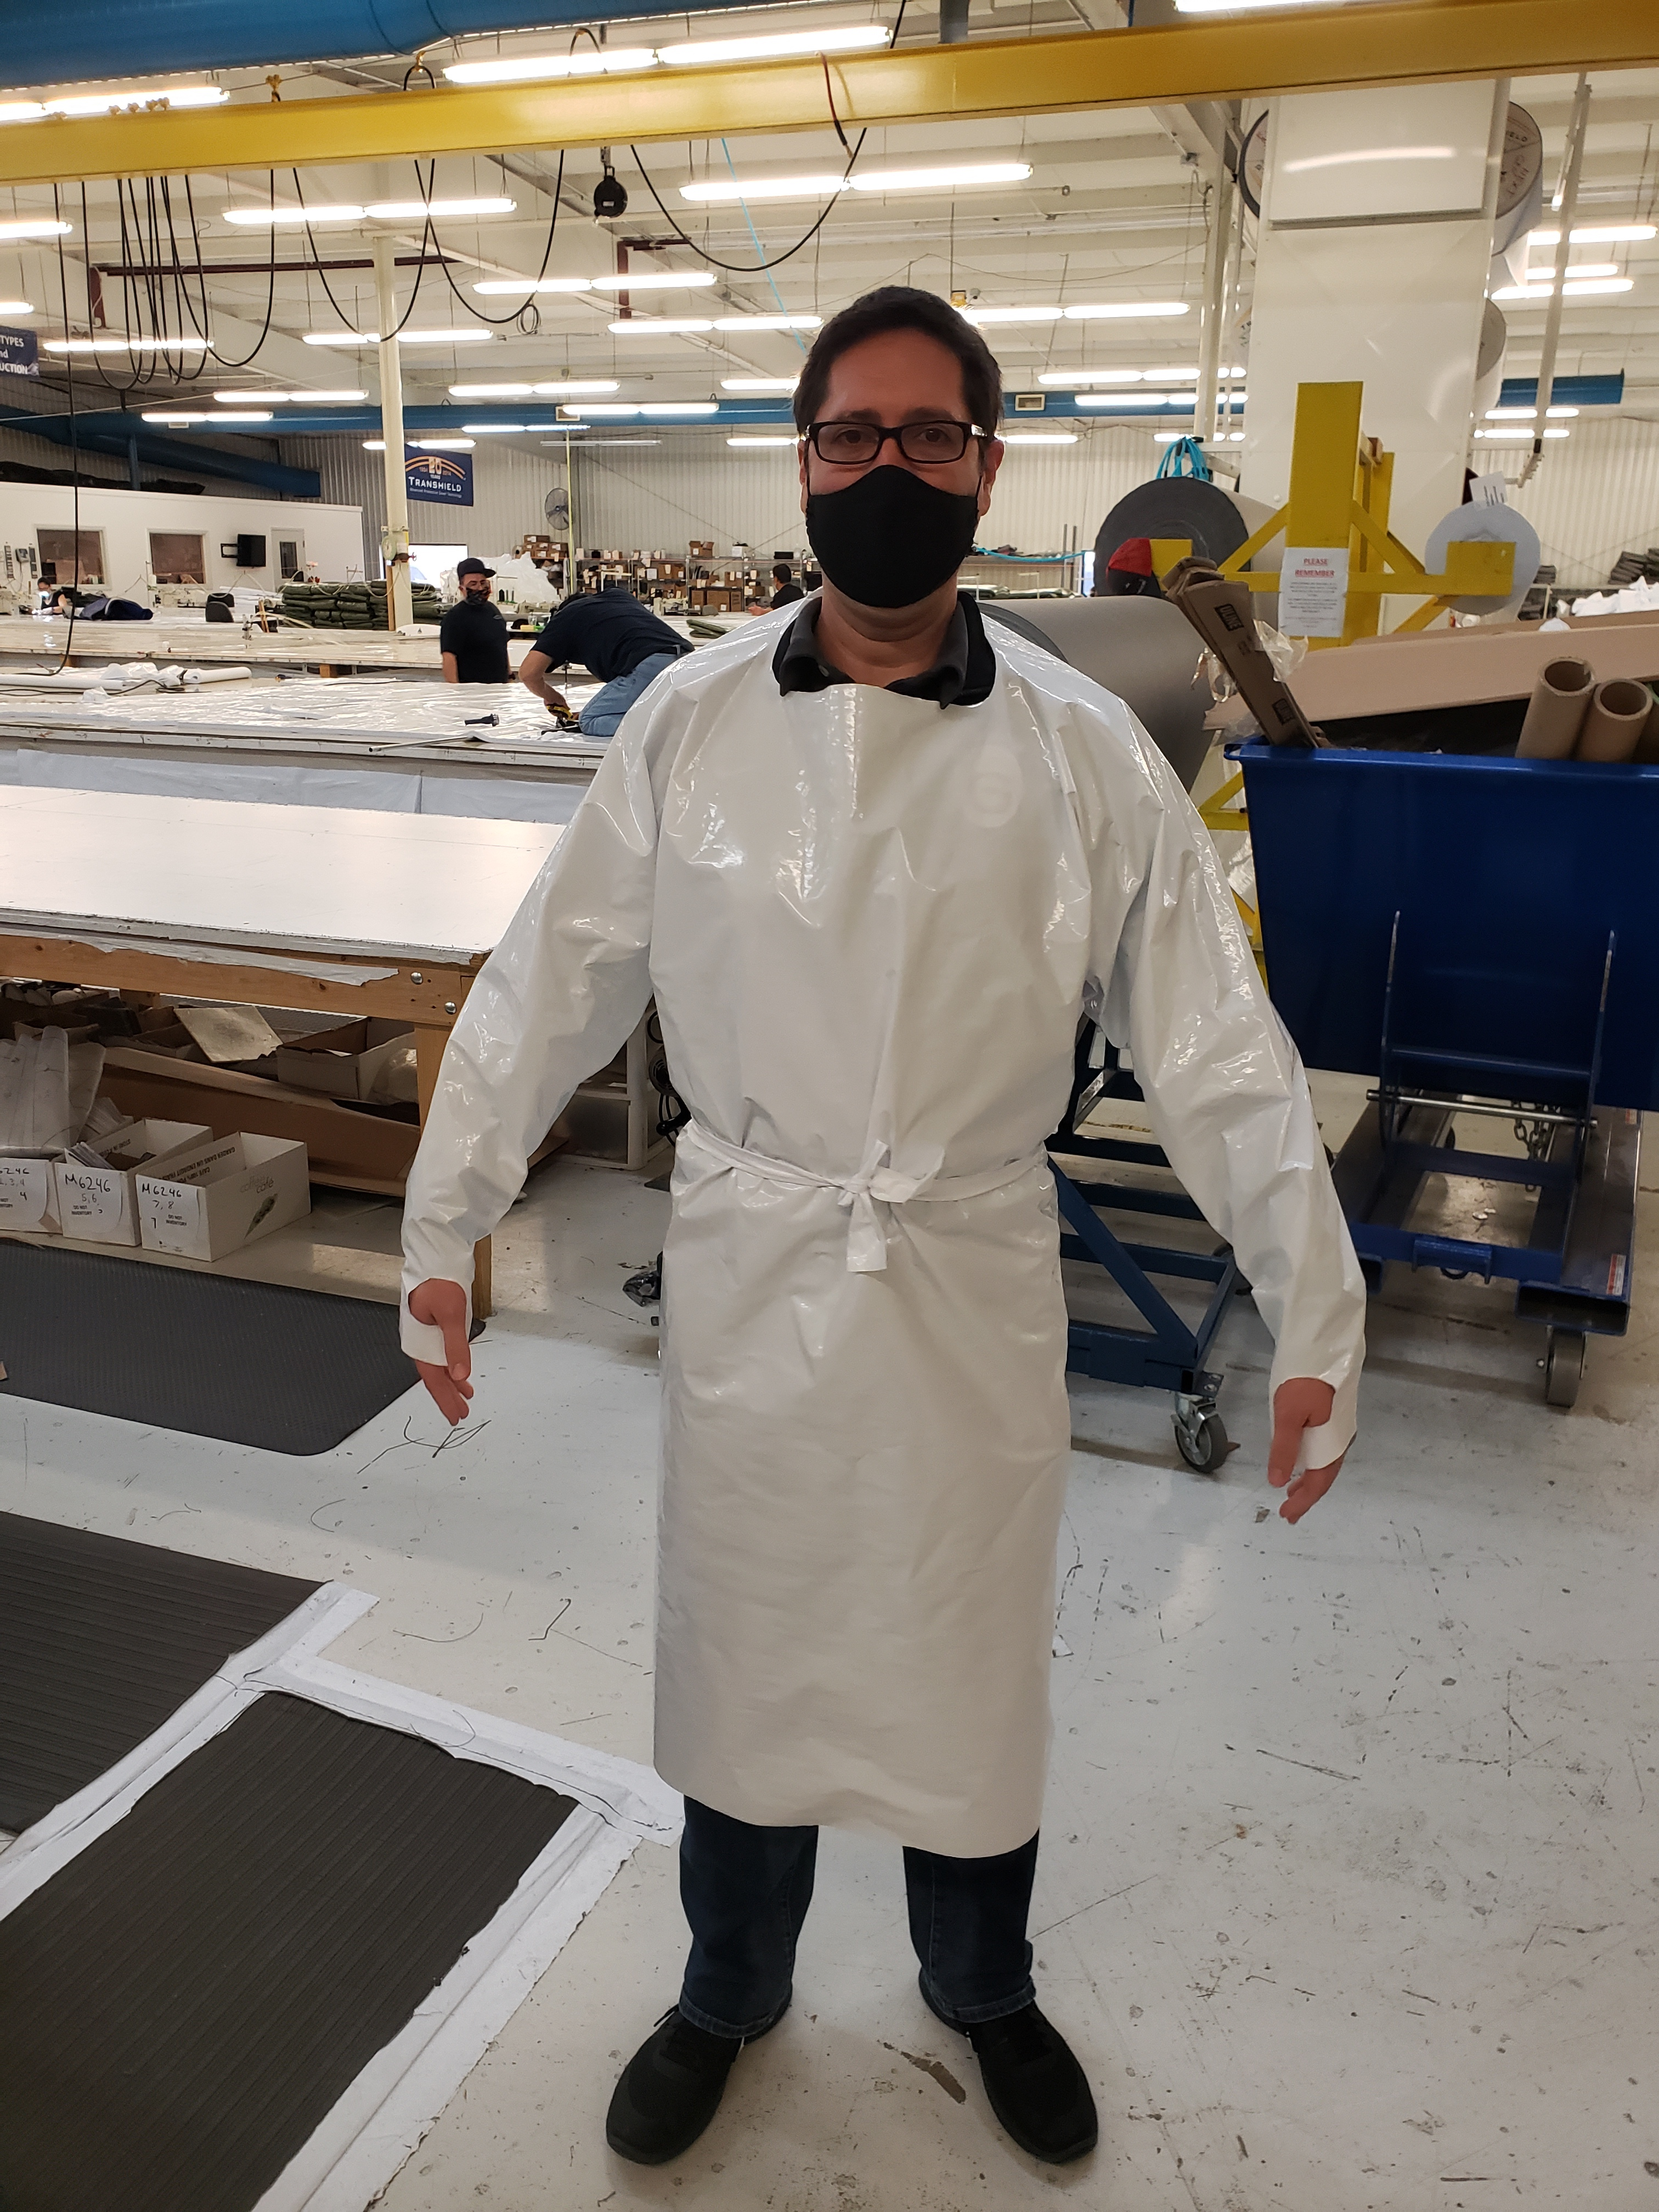 Boating Gives Back: Pivoting Production To Supply Local Hospitals With Protective Gowns And Curtains